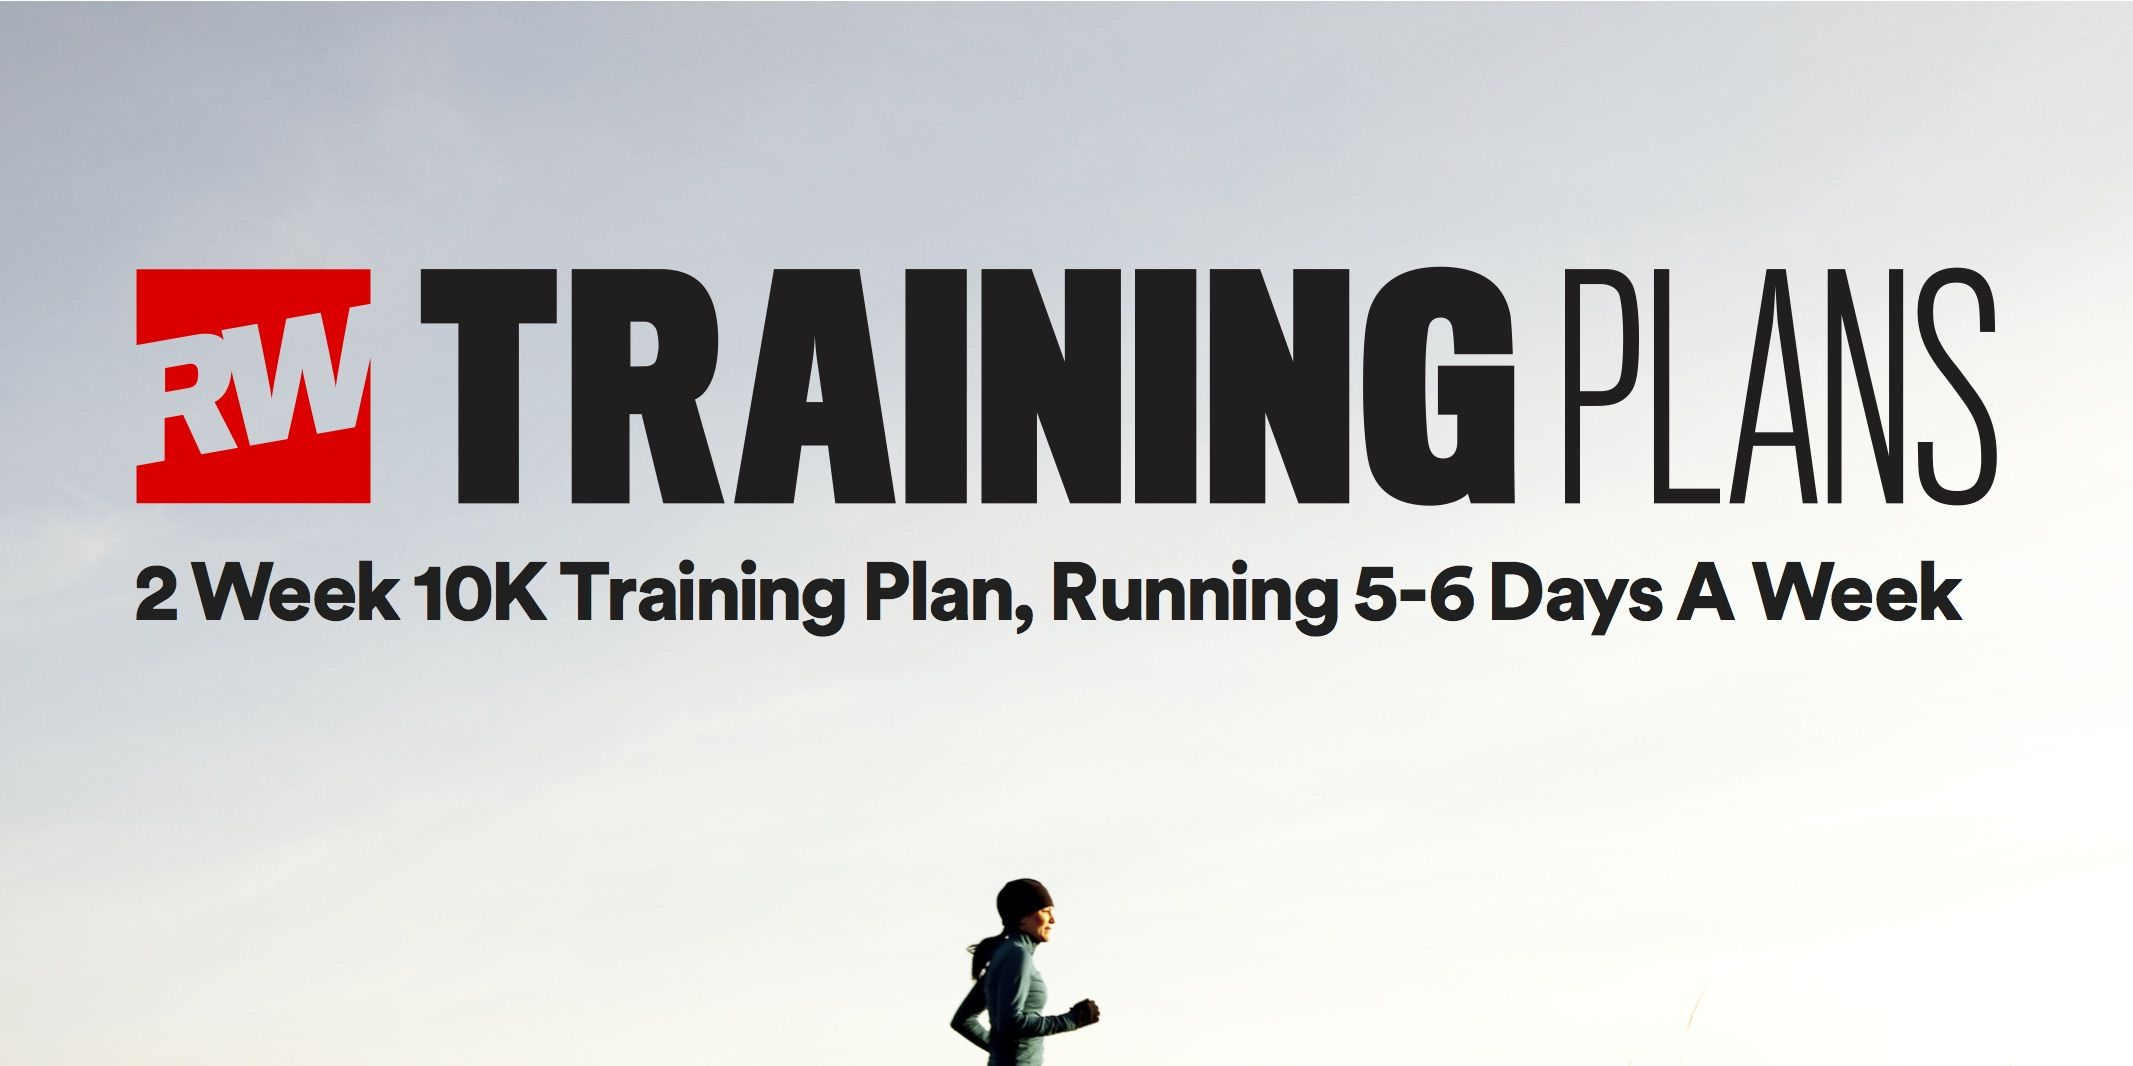 2 week 10K training plan, running 5-6 days a week